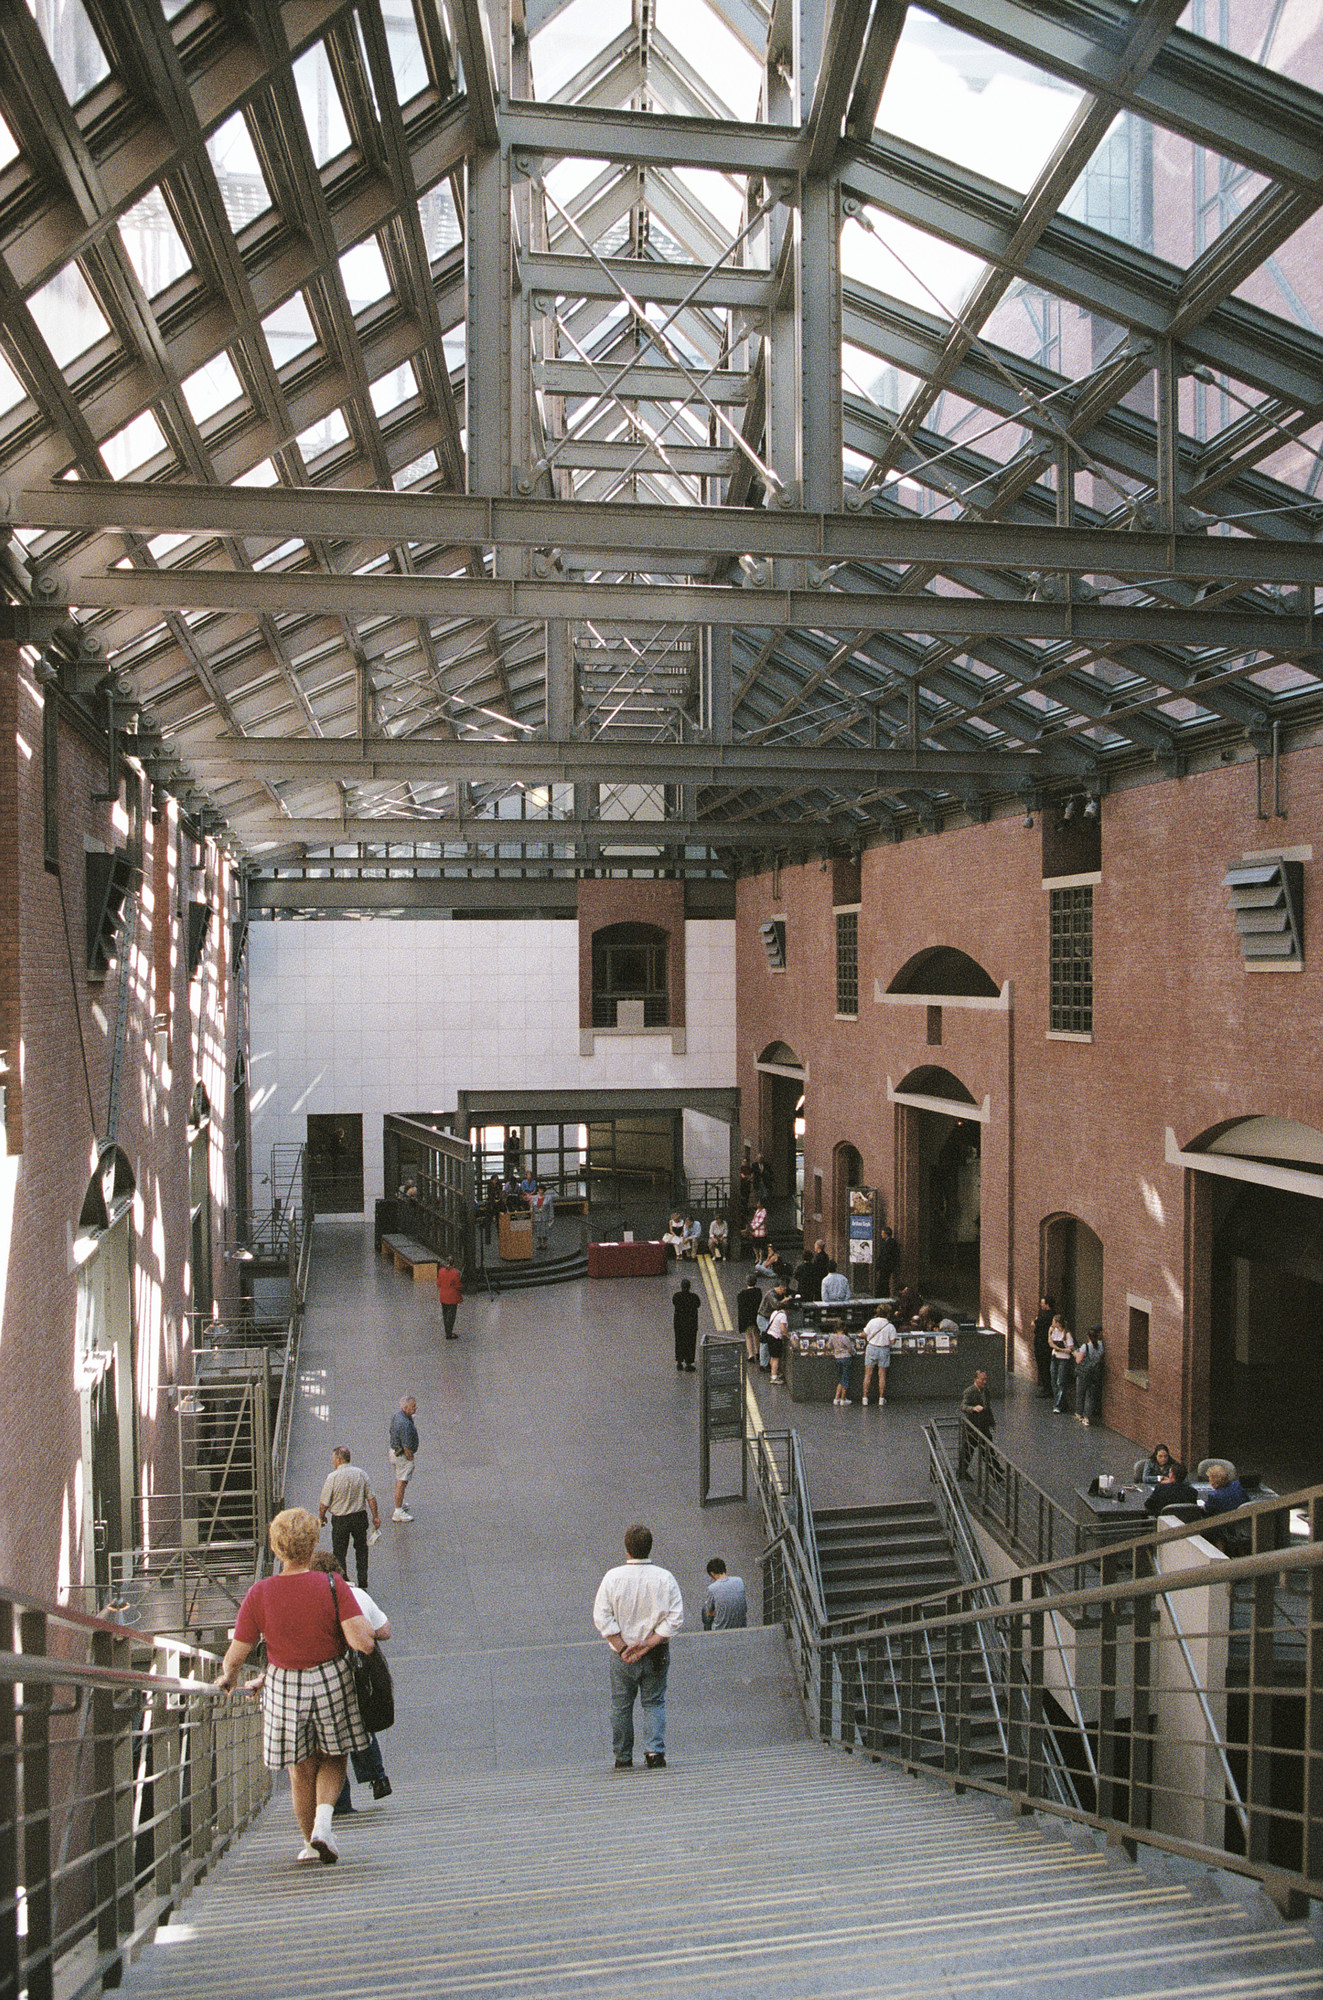 View of the Hall of Witness in the U.S. Holocaust Memorial Museum during a ceremony commemorating the first anniversary of the September 11, 2001 terrorist attacks.